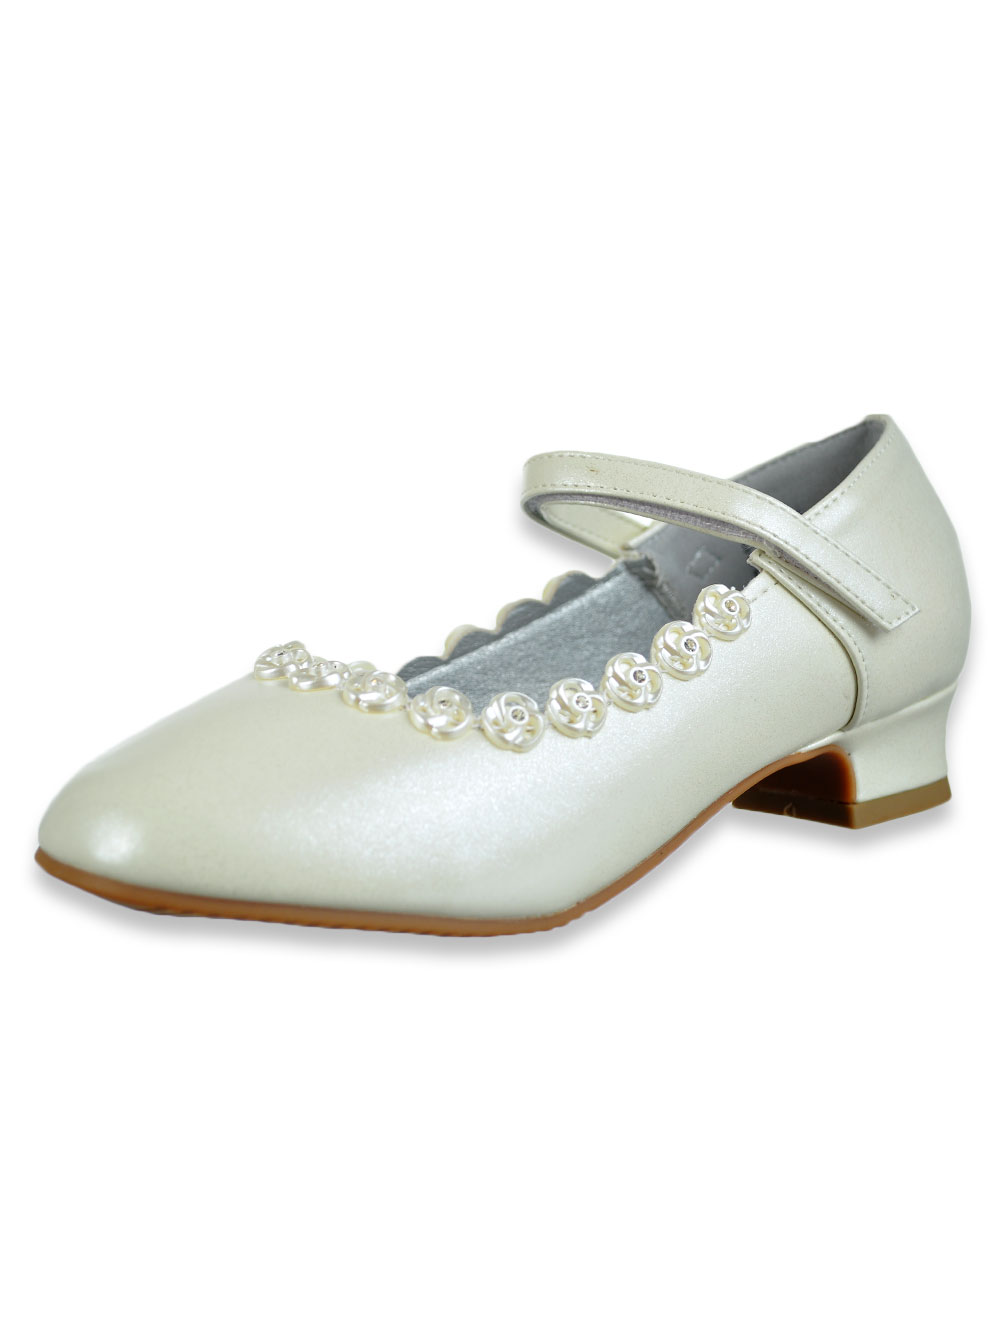 Girls Beige Dress Shoes